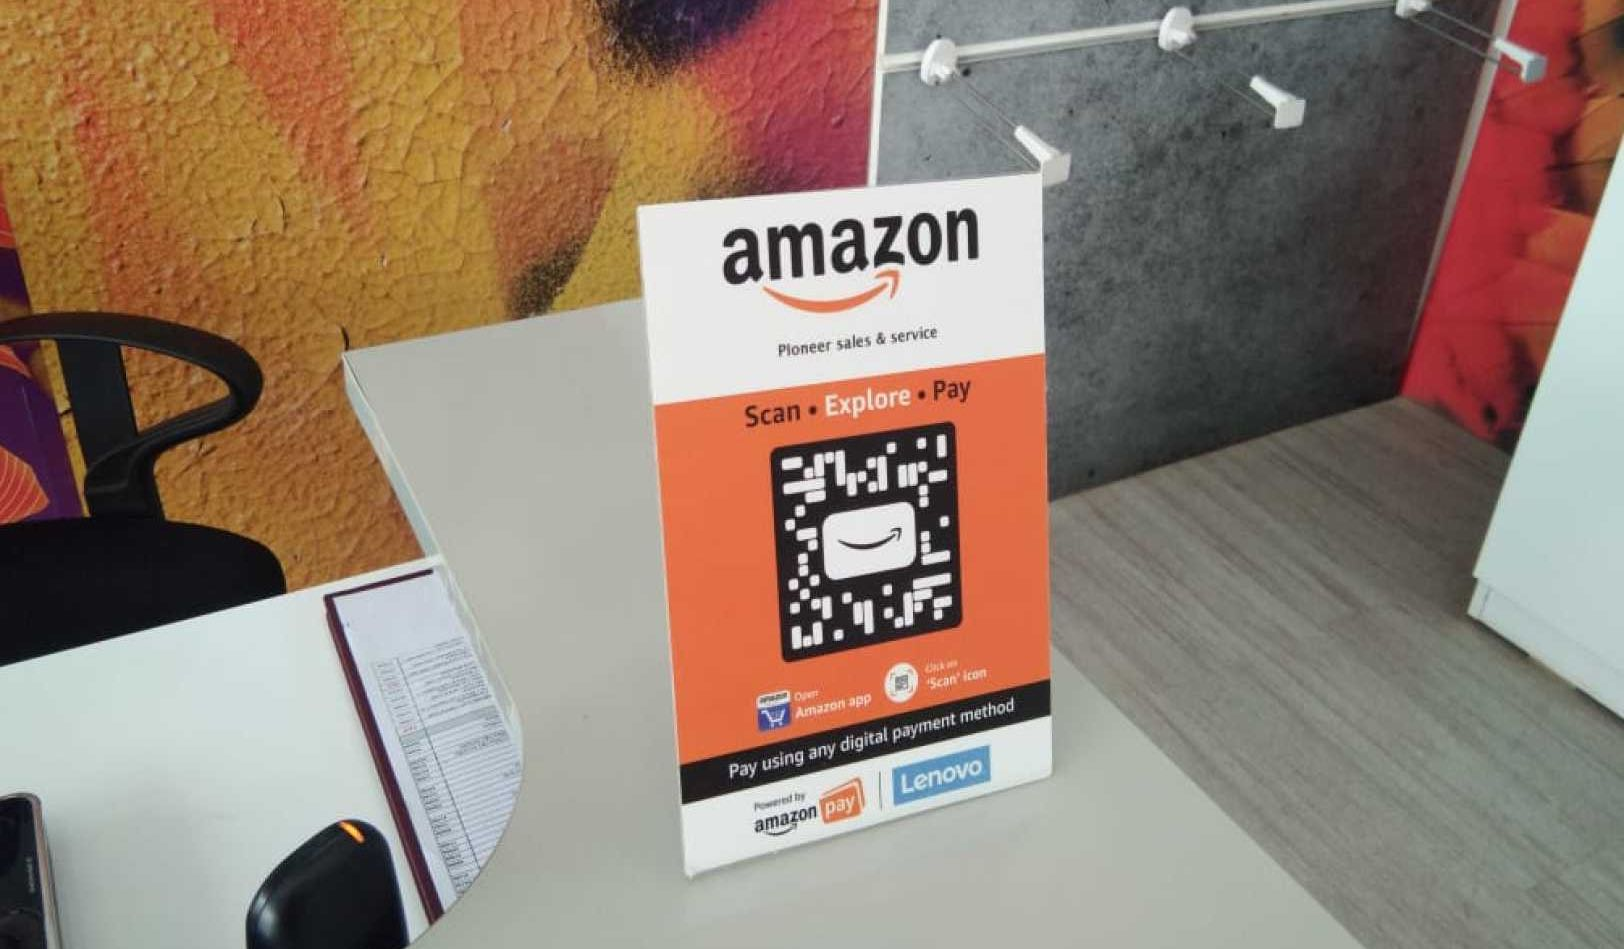 Amazon launches 'Smart Stores' in India to win mom and pop